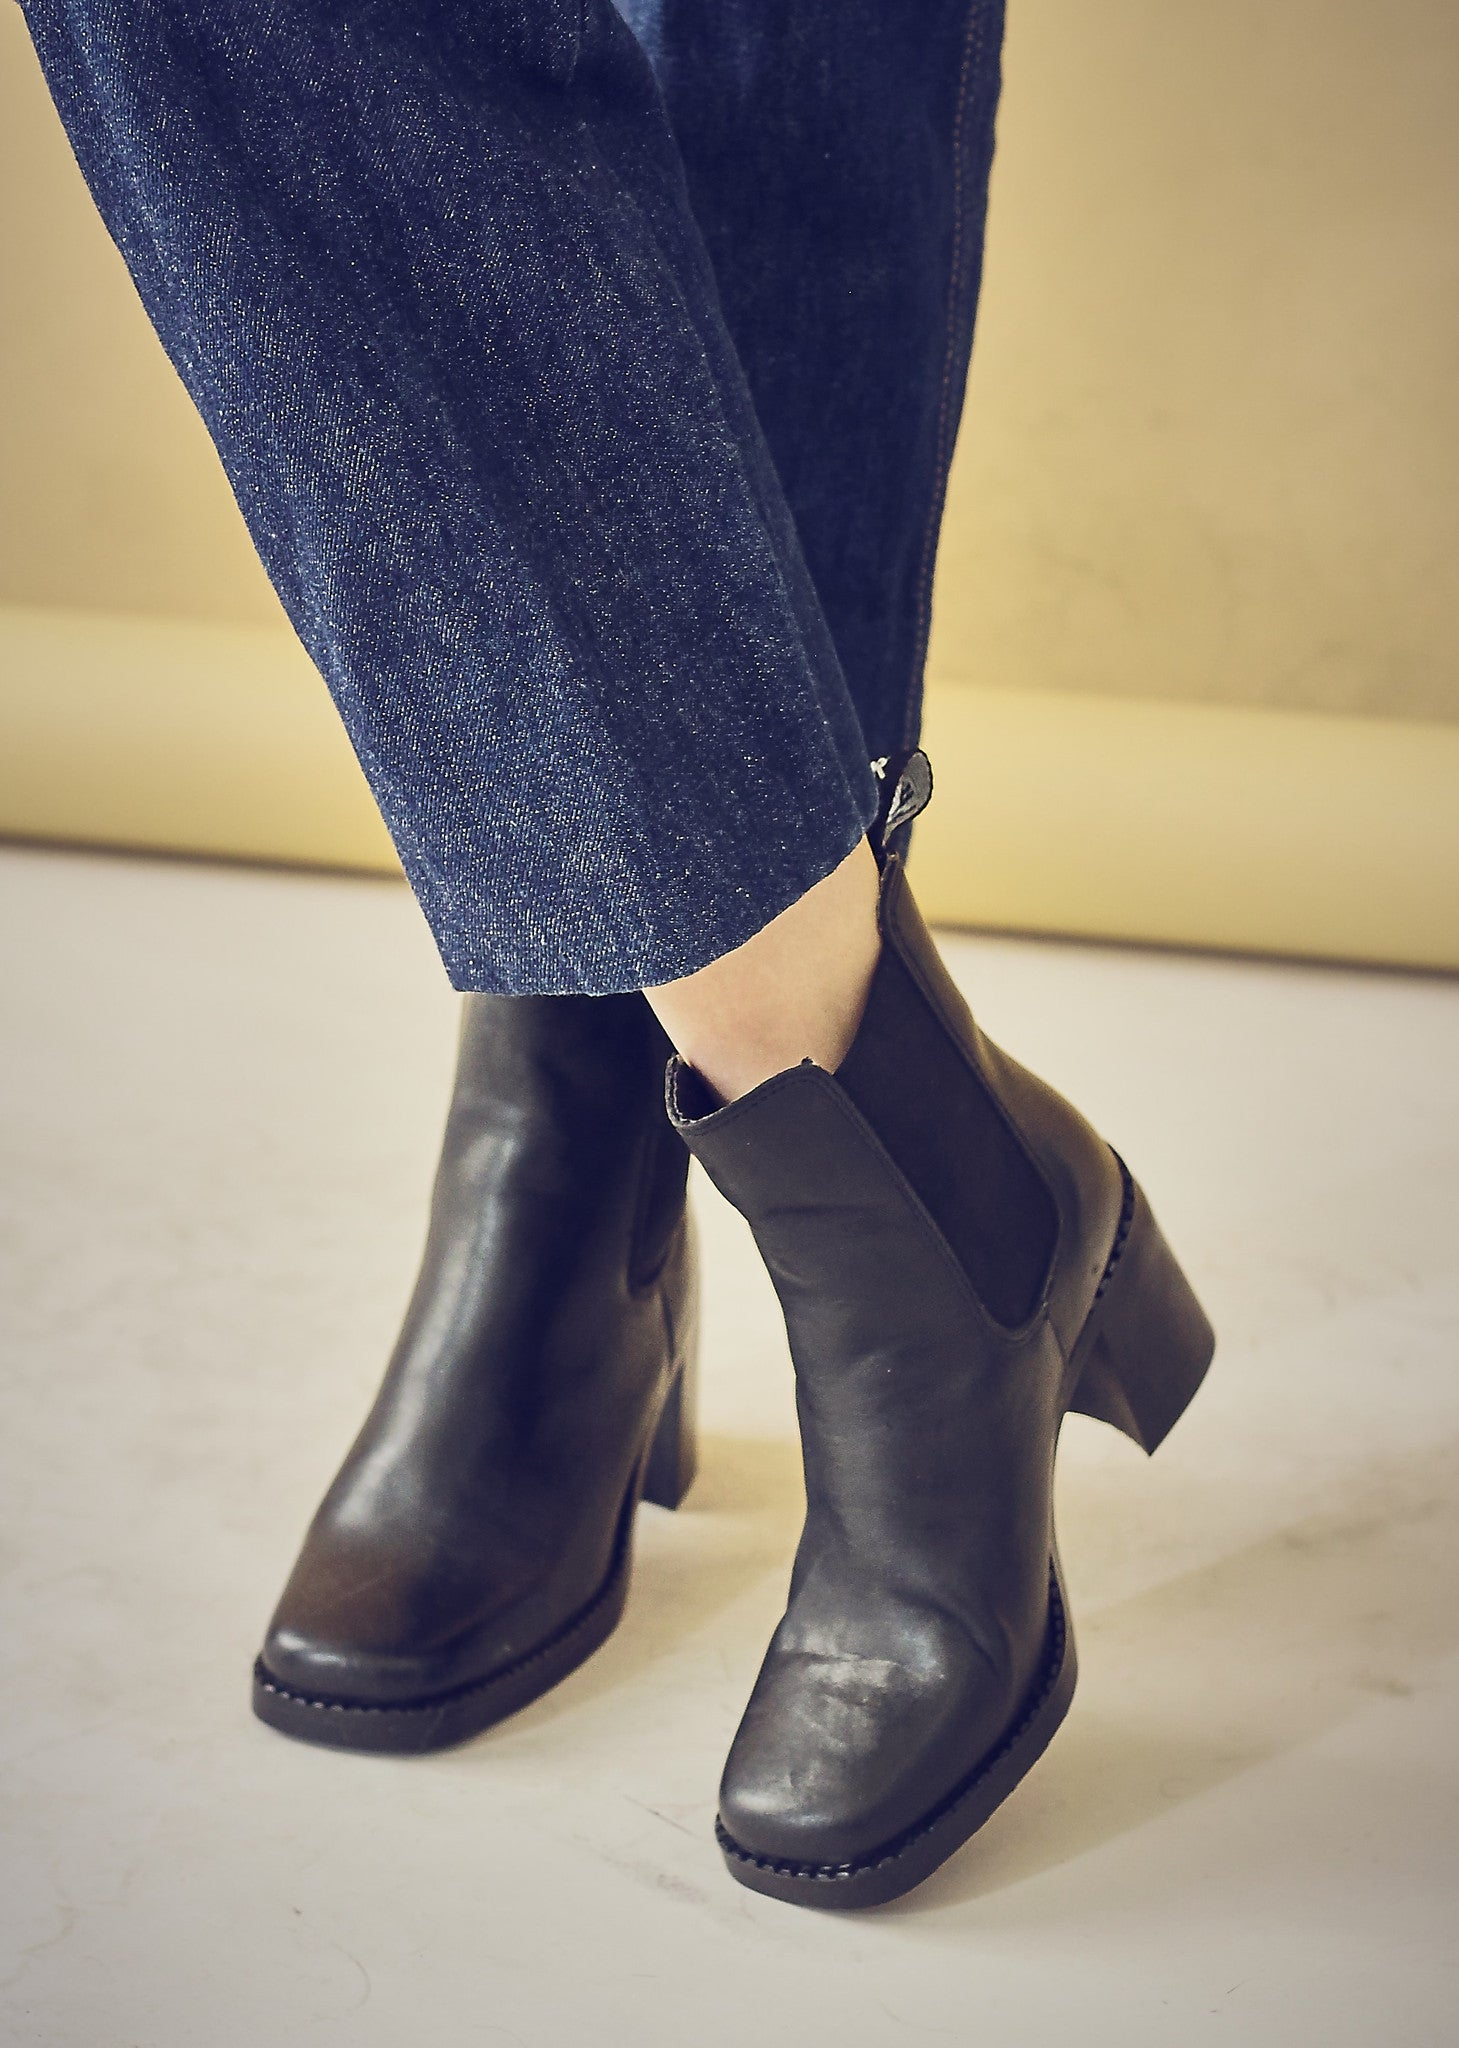 90s Style Black Leather Chunky Heel Chelsea Boots - Bird On A Wire